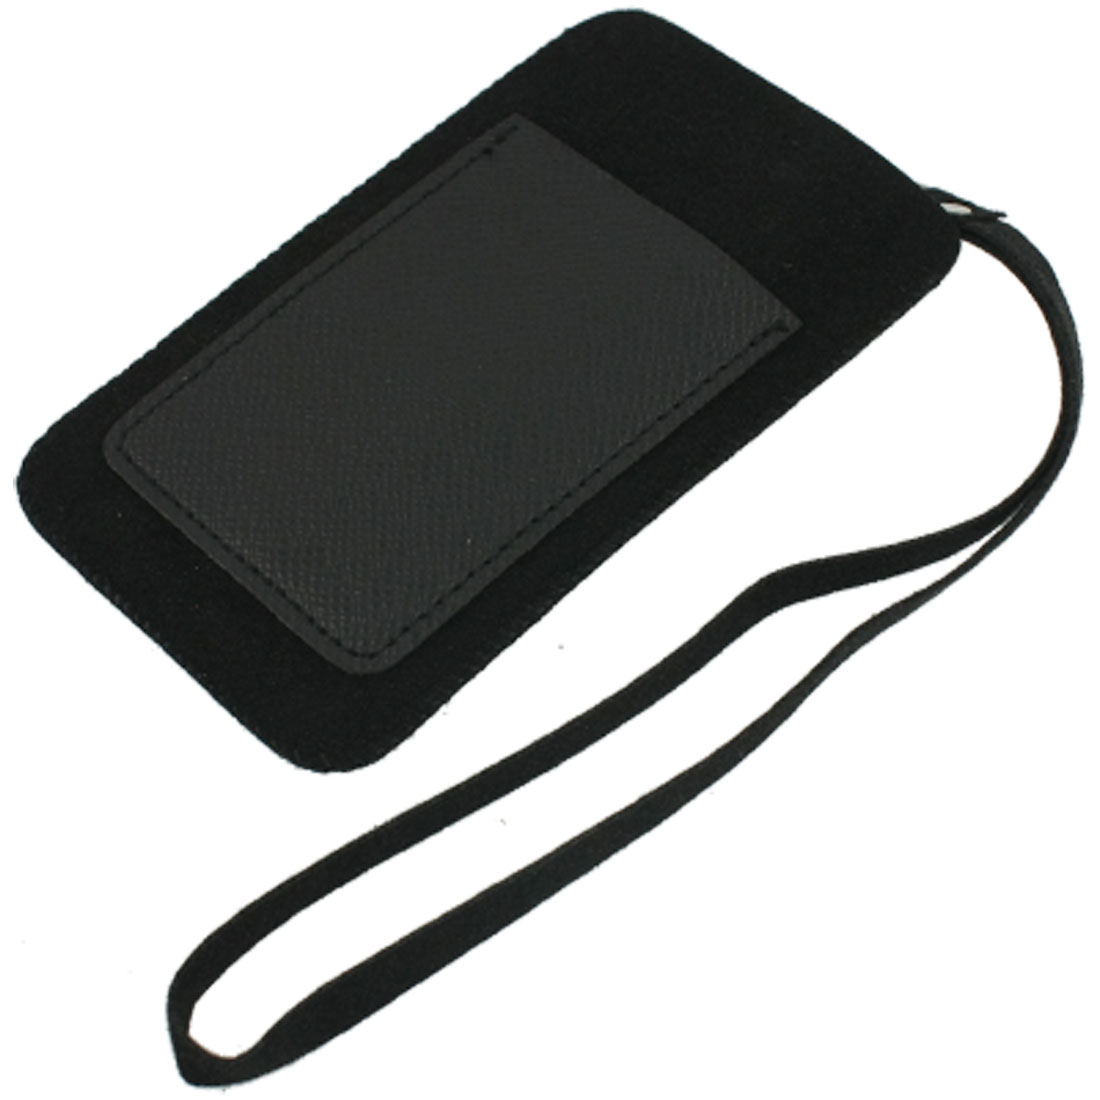 Black PVC Faux Leather Pouch 2 Compartments Cell Phone Holder